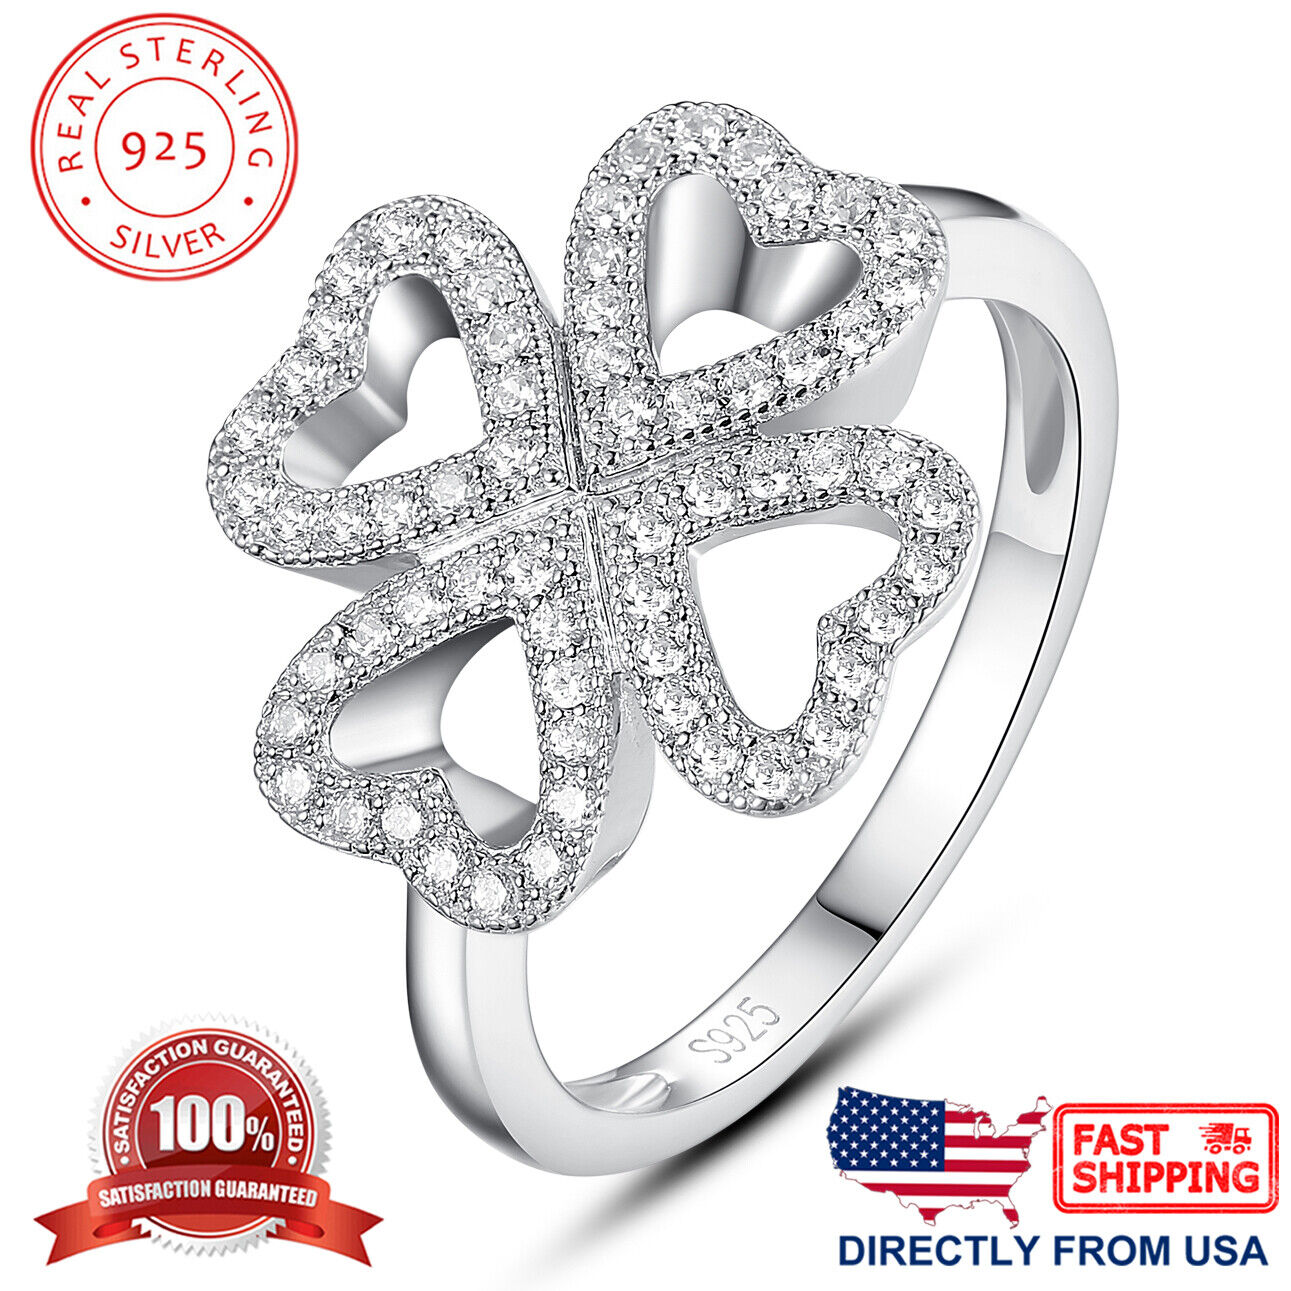 Women's Sterling Four Leaf Clover Heart Micro Pave Cubic Zirconia Cocktail Ring Fine Jewelry